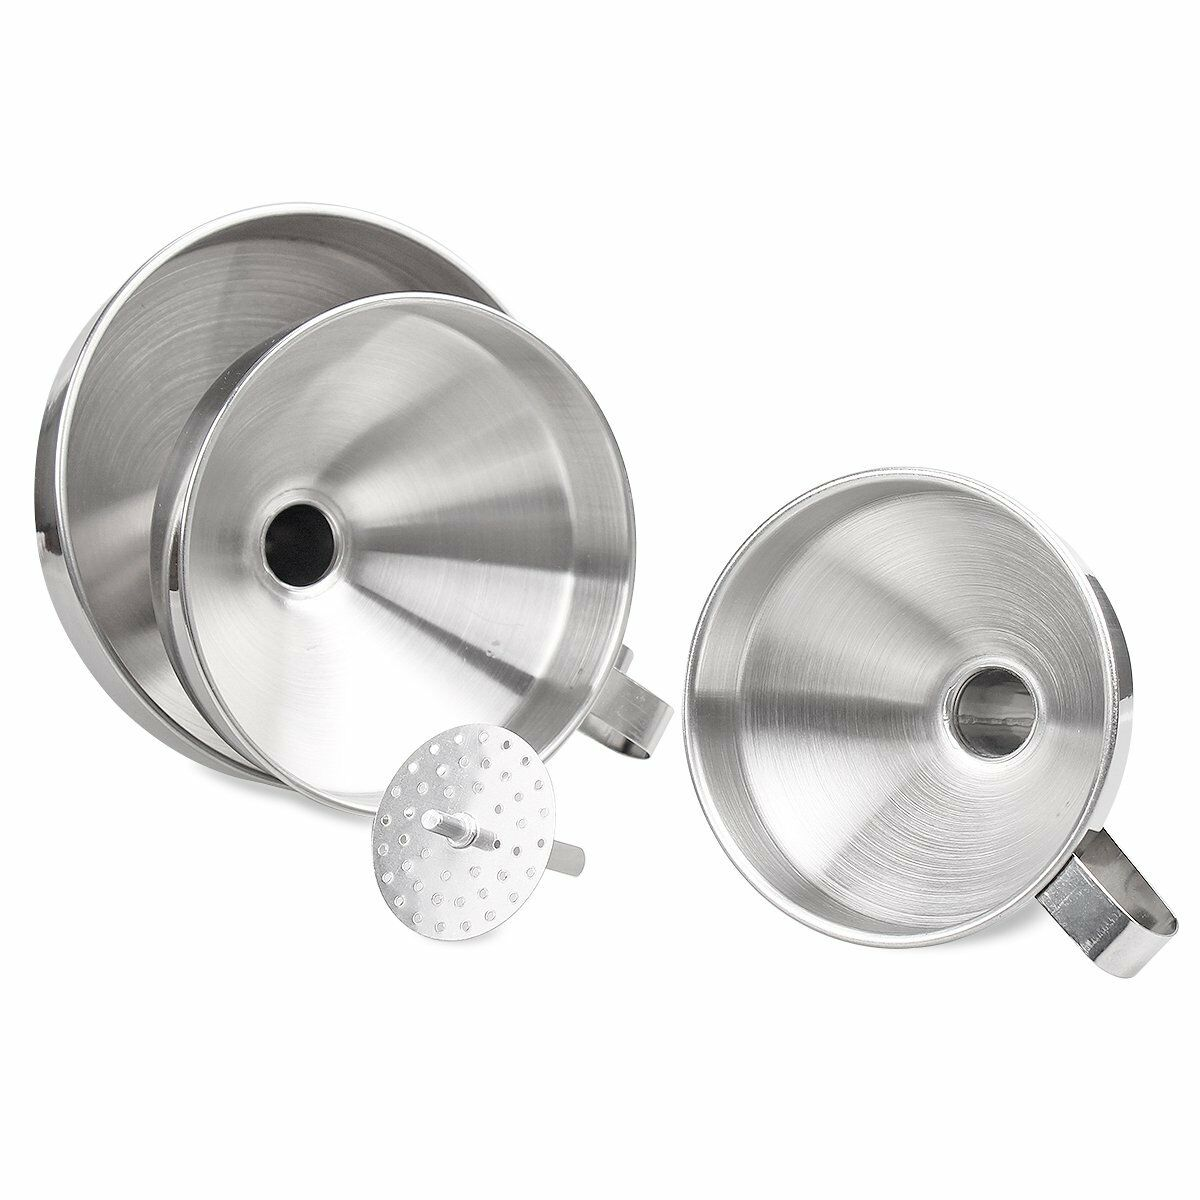 Stainless Steel Kitchen Funnel With Removable Strainer Set of 3 ...